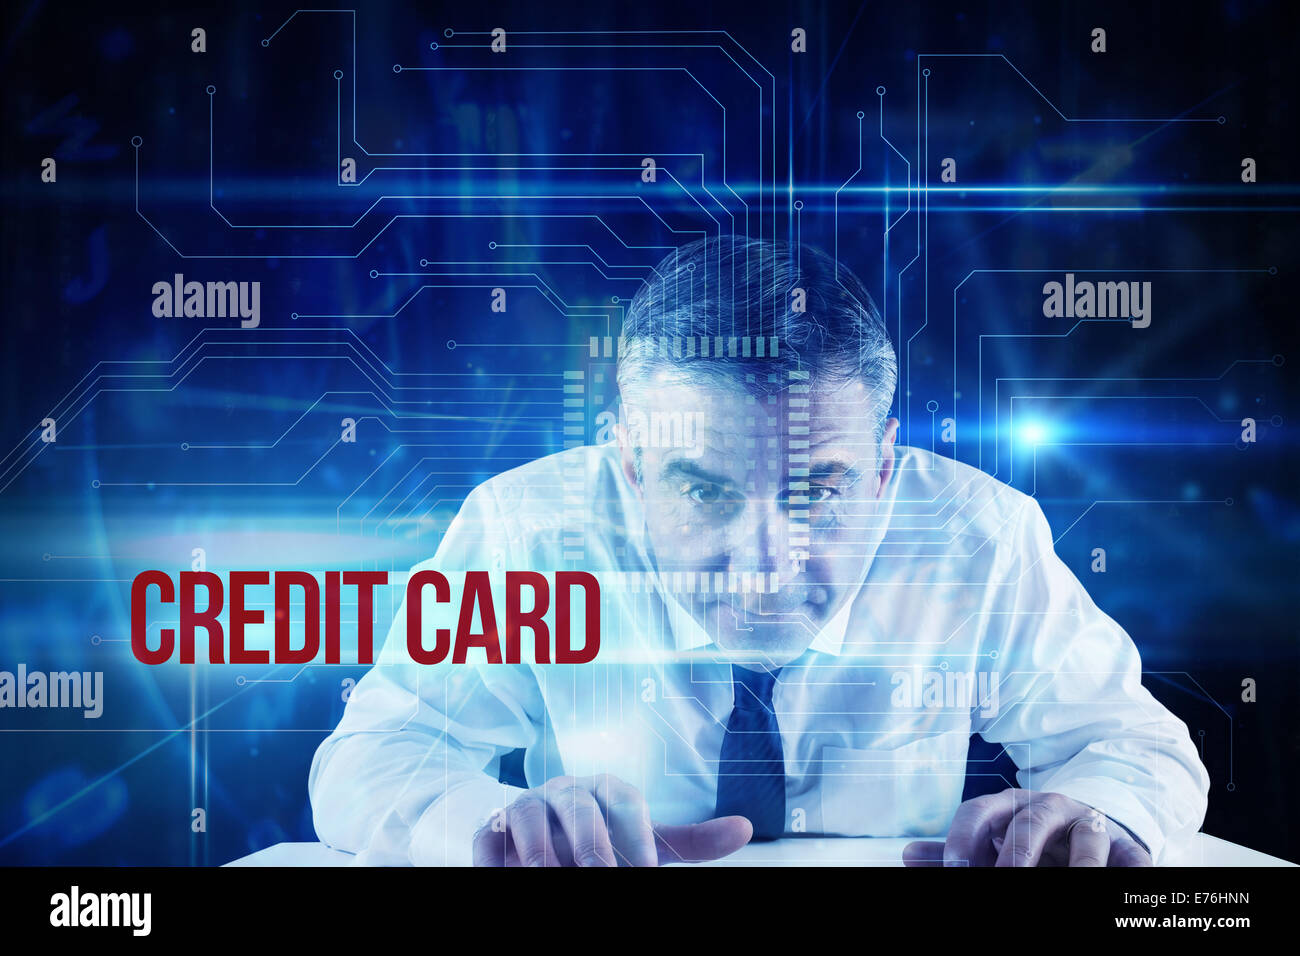 Credit card against blue technology interface with circuit board - Stock Image